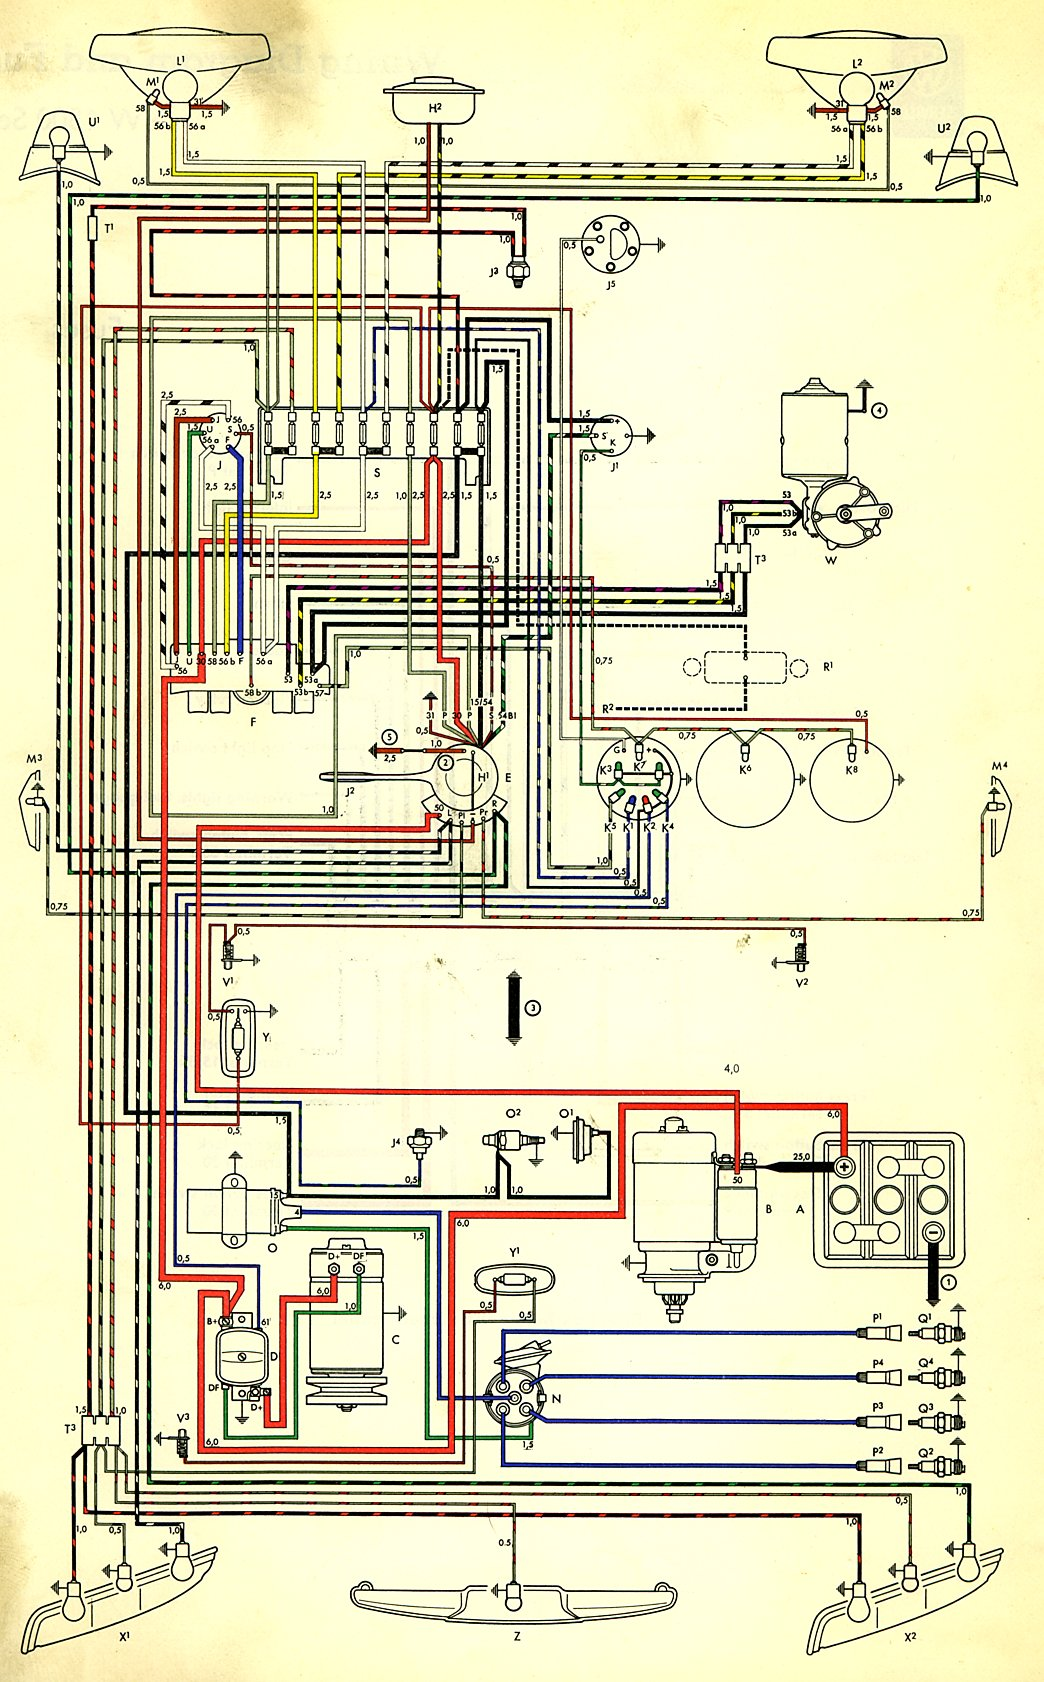 5 3 Engine Wiring Harness Library Plymouth Duster Diagram Get Free Image About Volkswagen Type